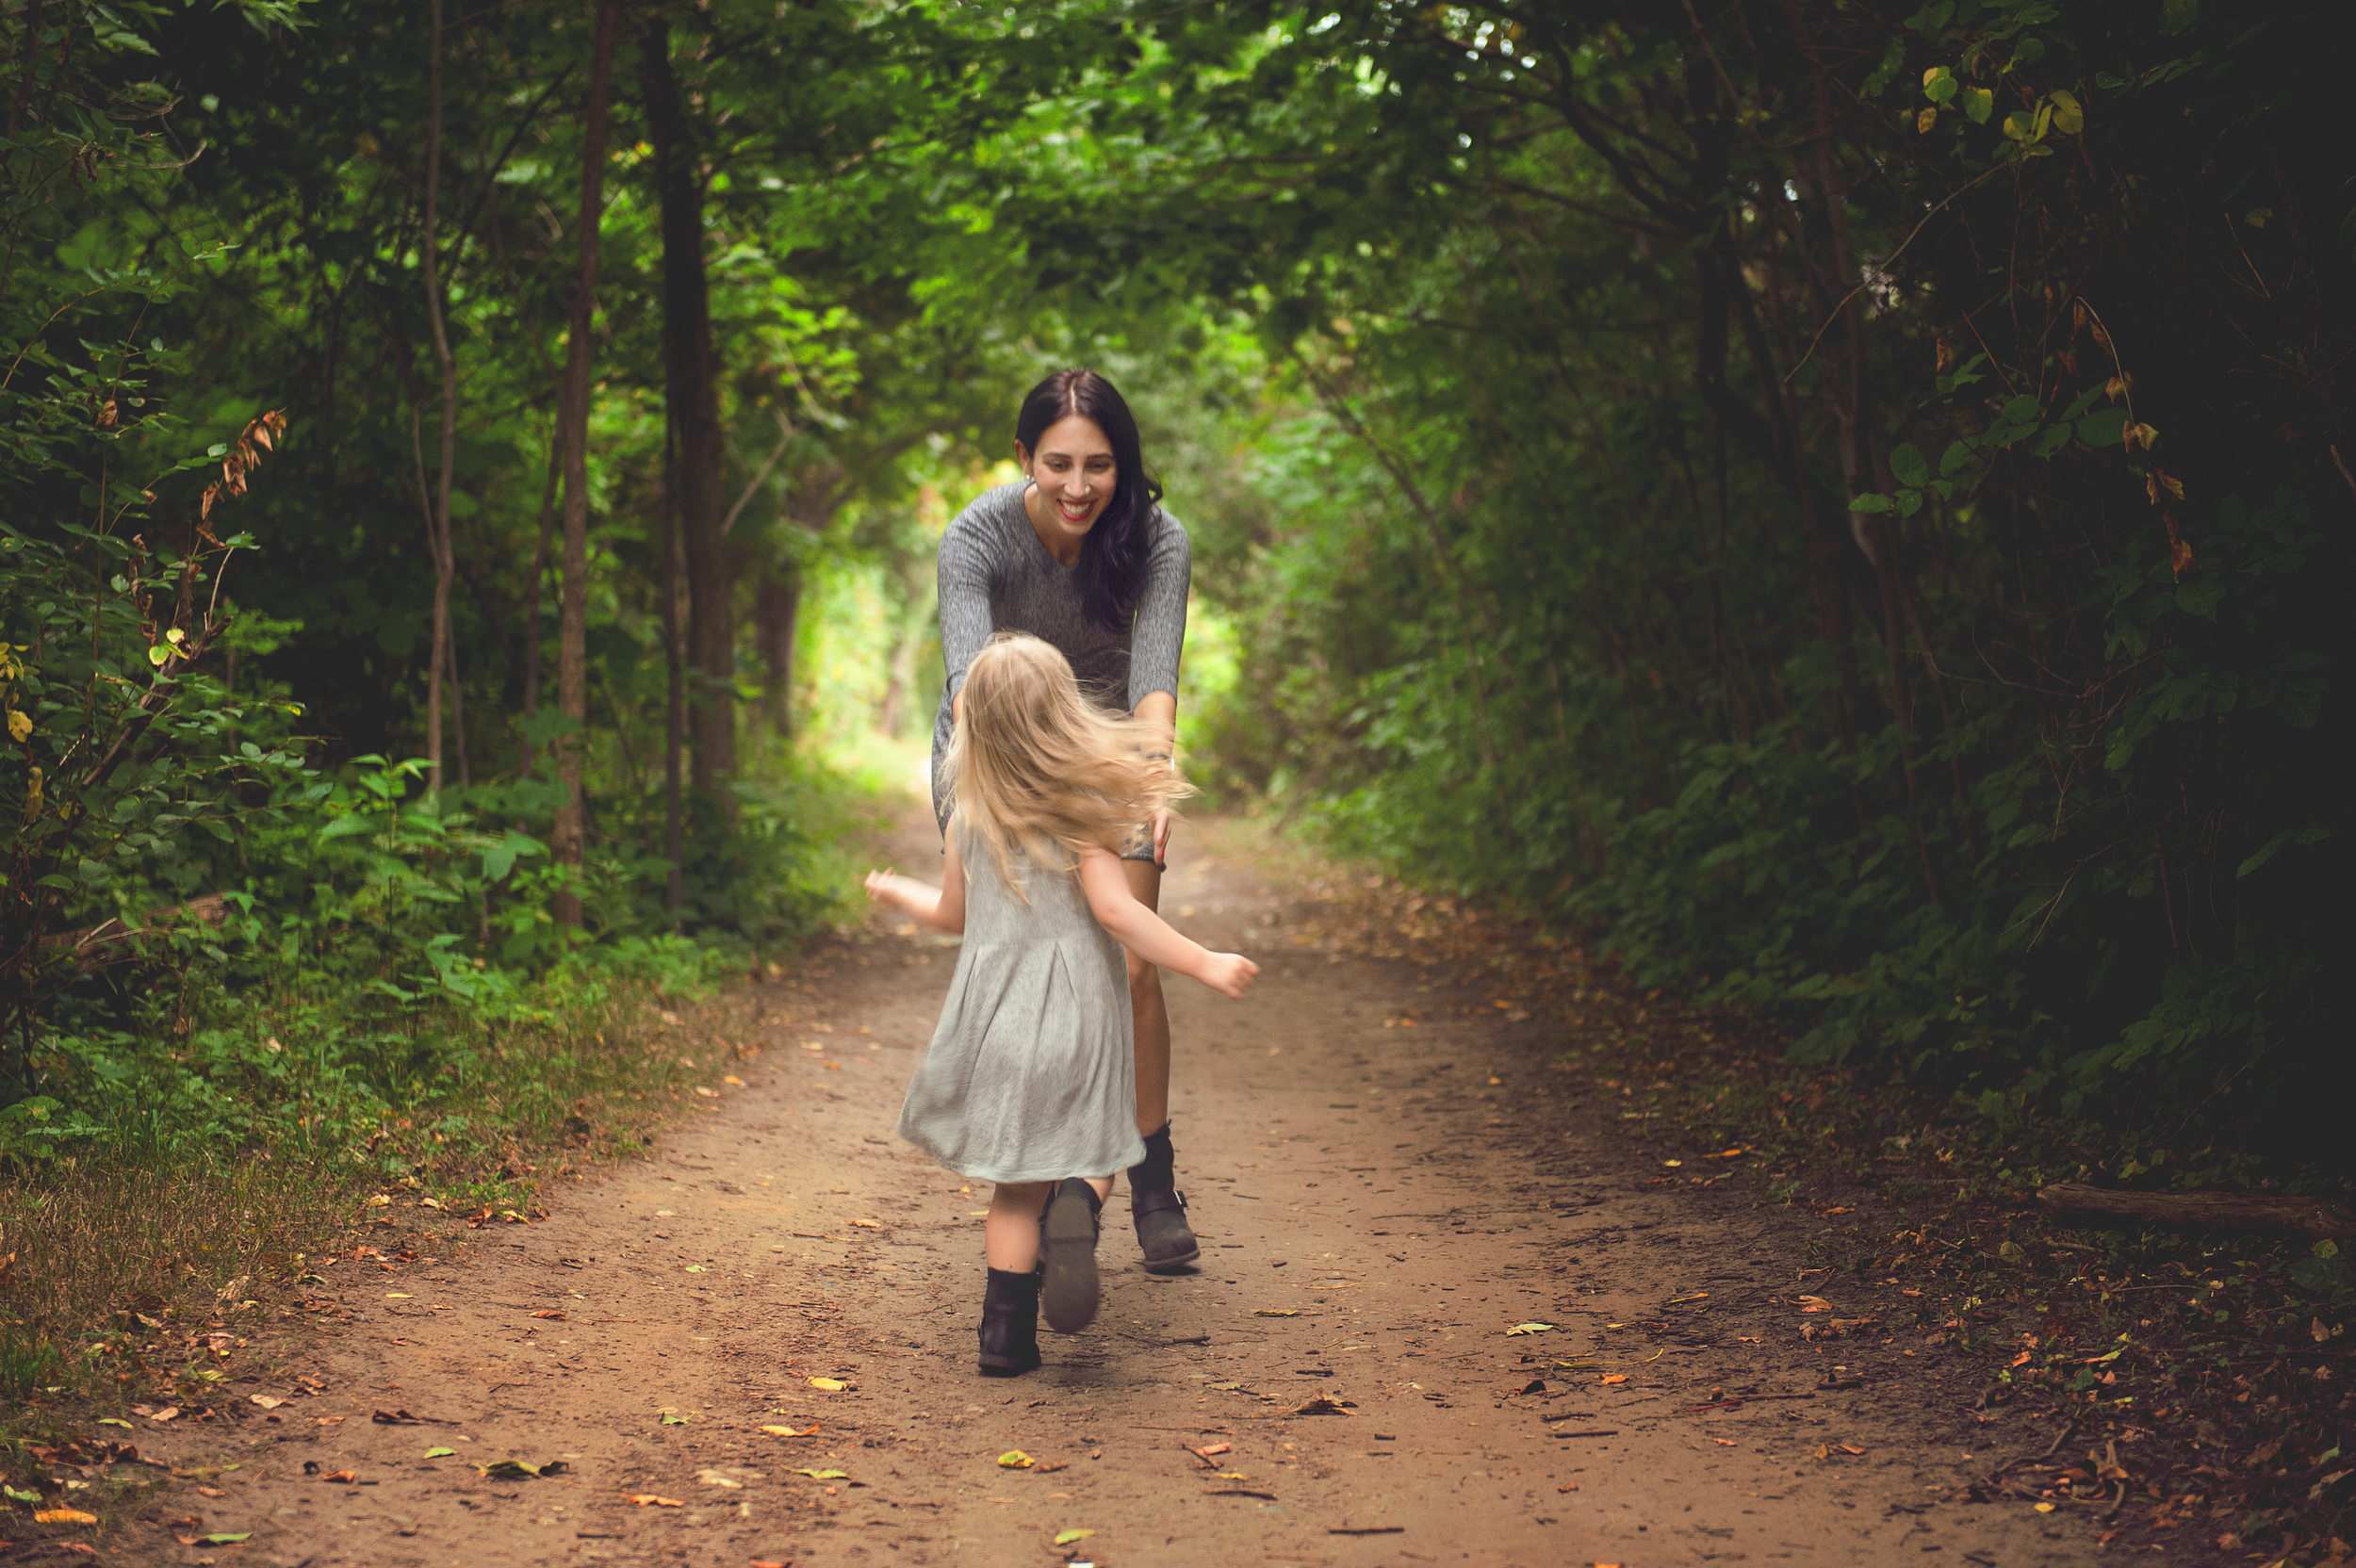 A another image of pyper running into her moms arms after she was getting tired of walking and just wanting to go home.